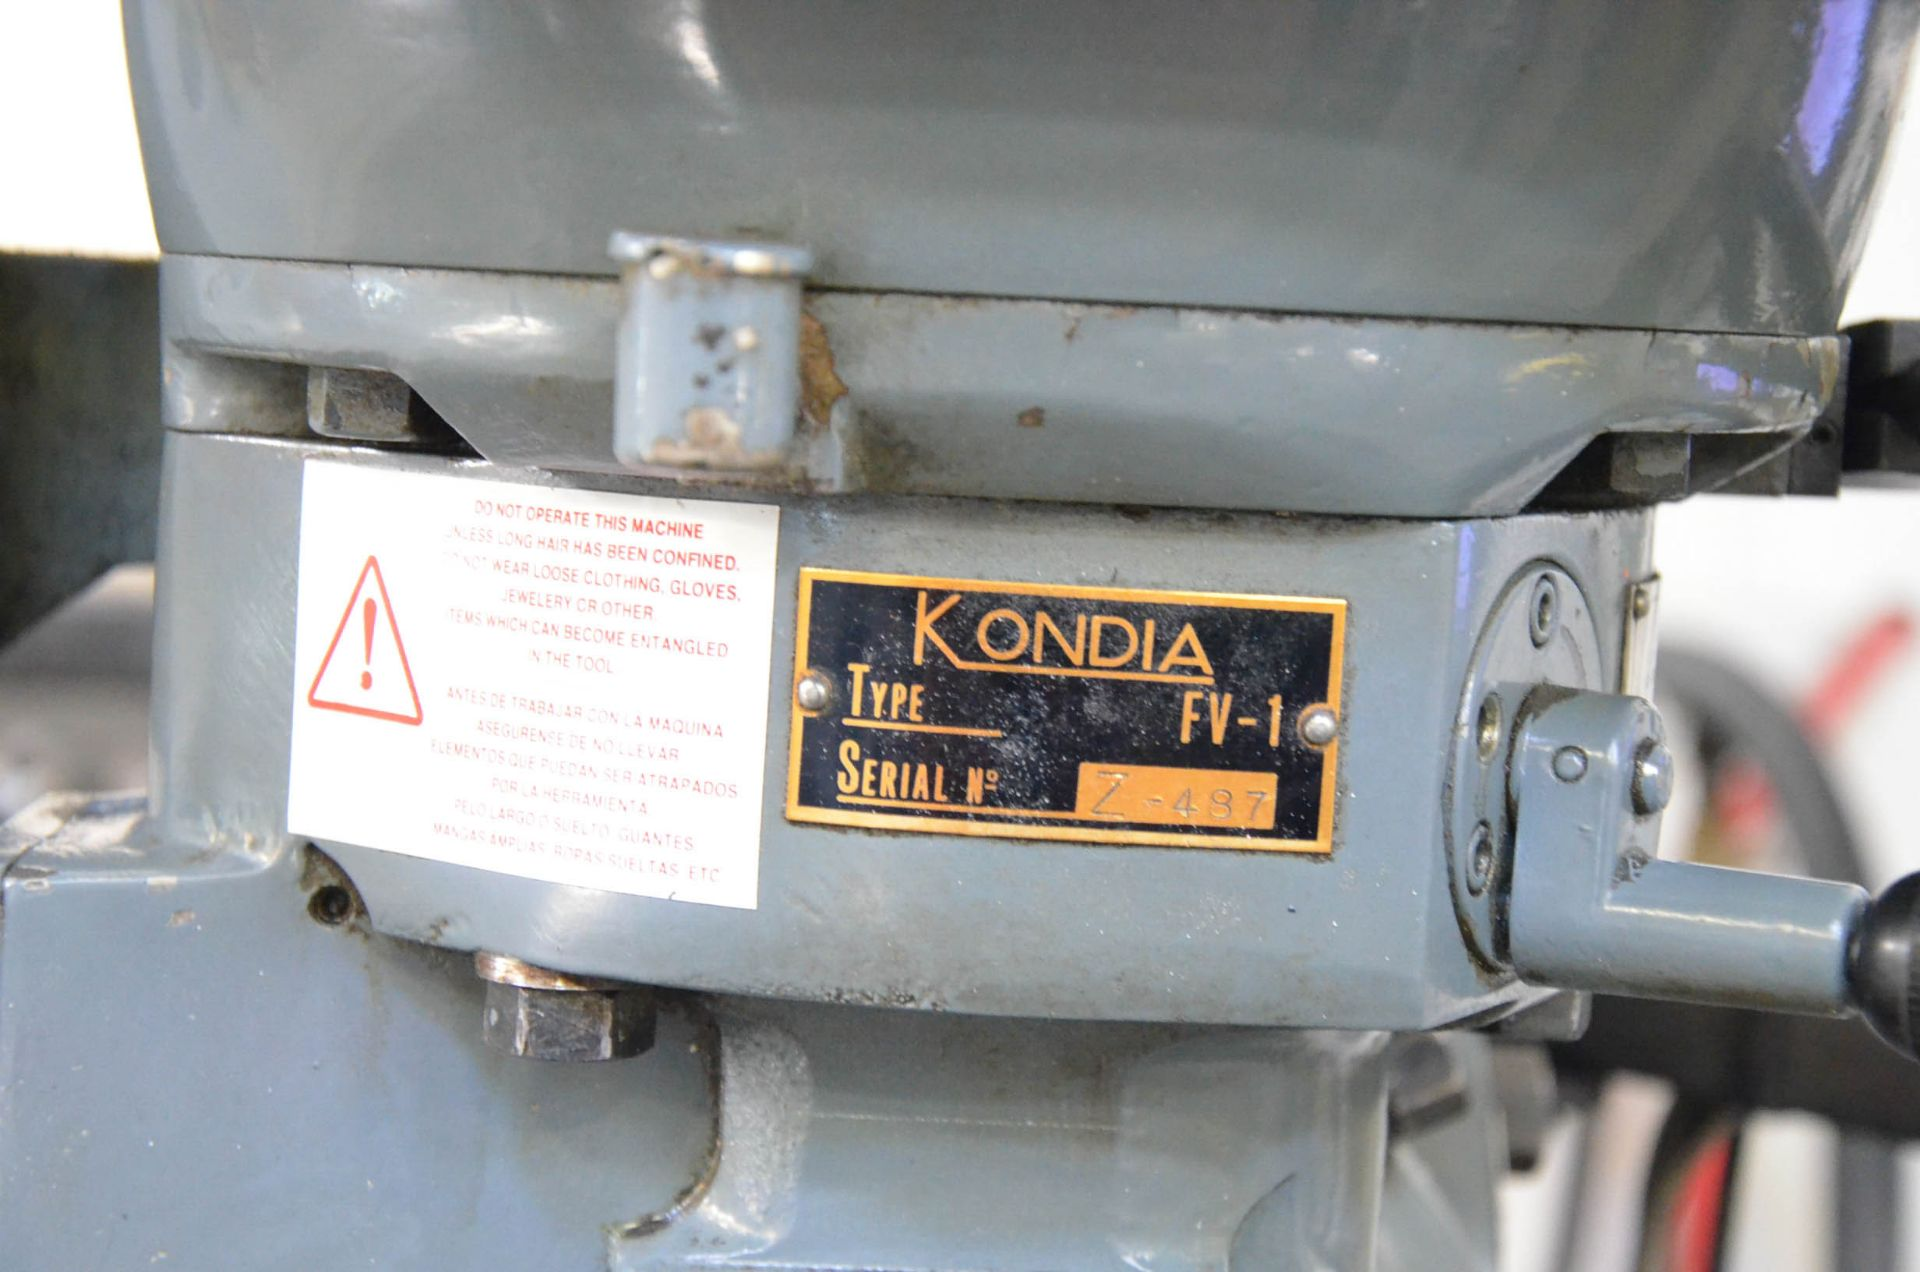 """KONDIA POWERMILL TYPE FV-1 VERTICAL TURRET MILLING MACHINE WITH 9""""X42"""" TABLE, SPEEDS TO 4,000RPM, - Image 3 of 6"""